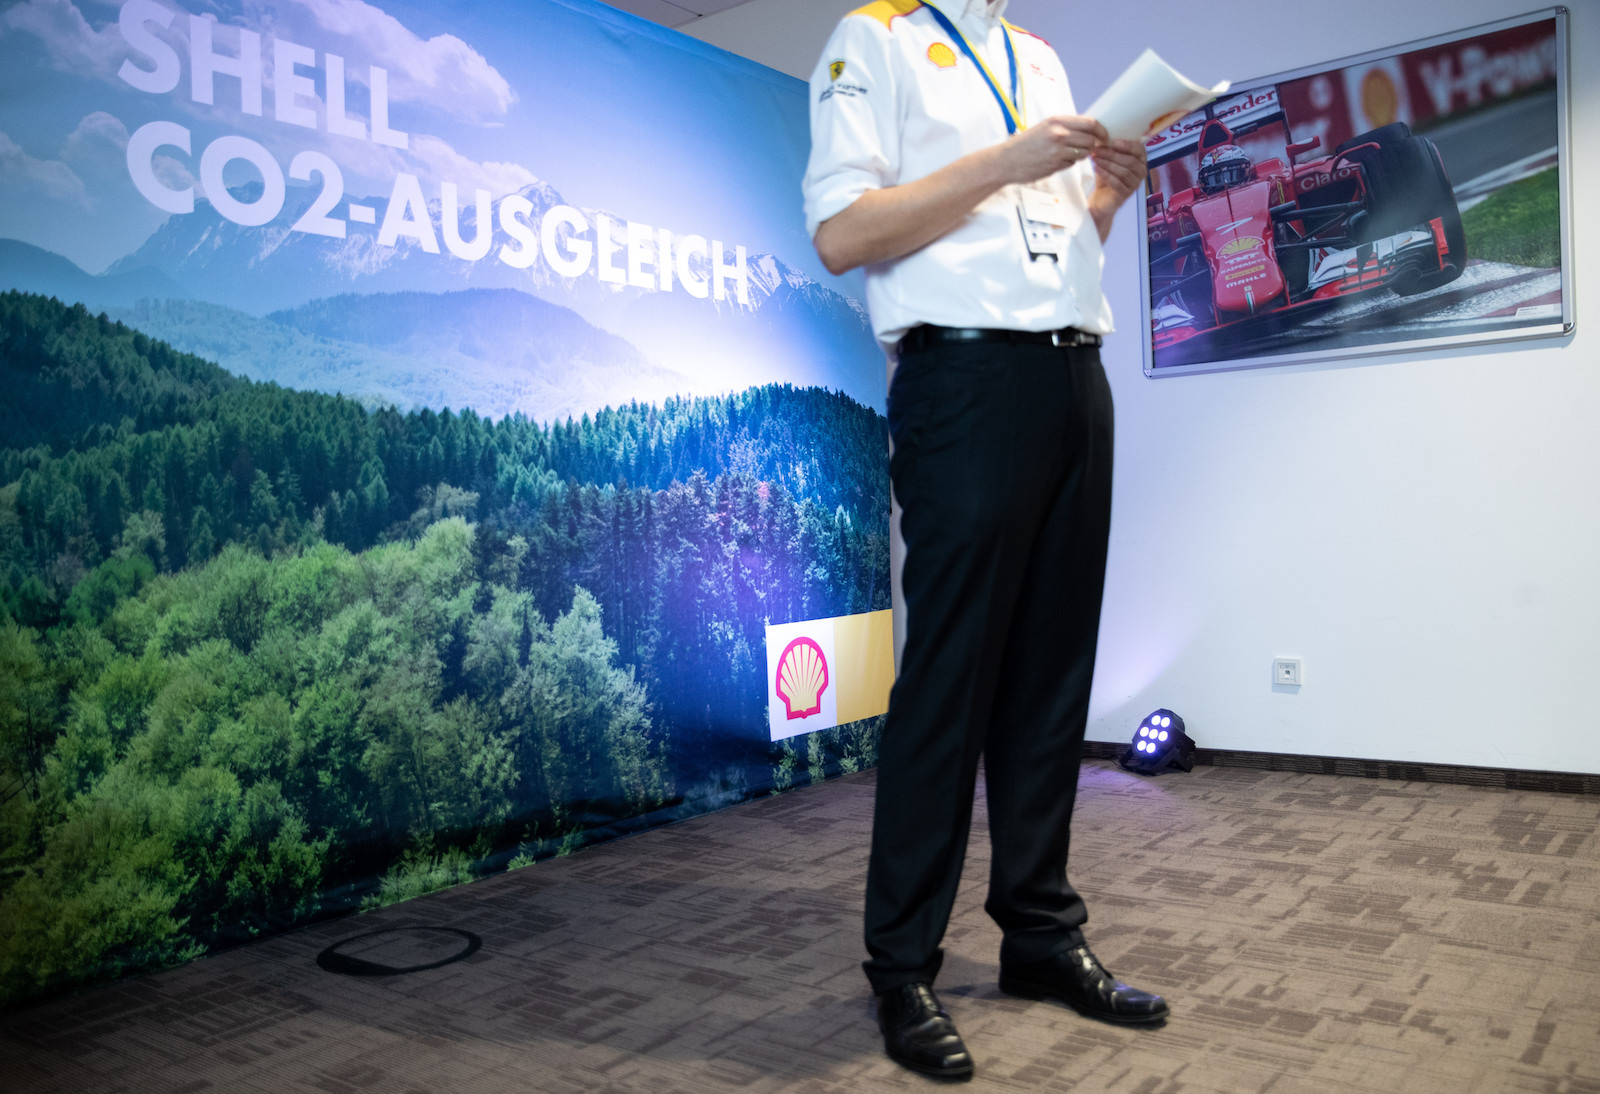 a man in a white shirt and black pans stands in front of a large mural covered in trees promoting a tree-related CO2 offset by Shell company